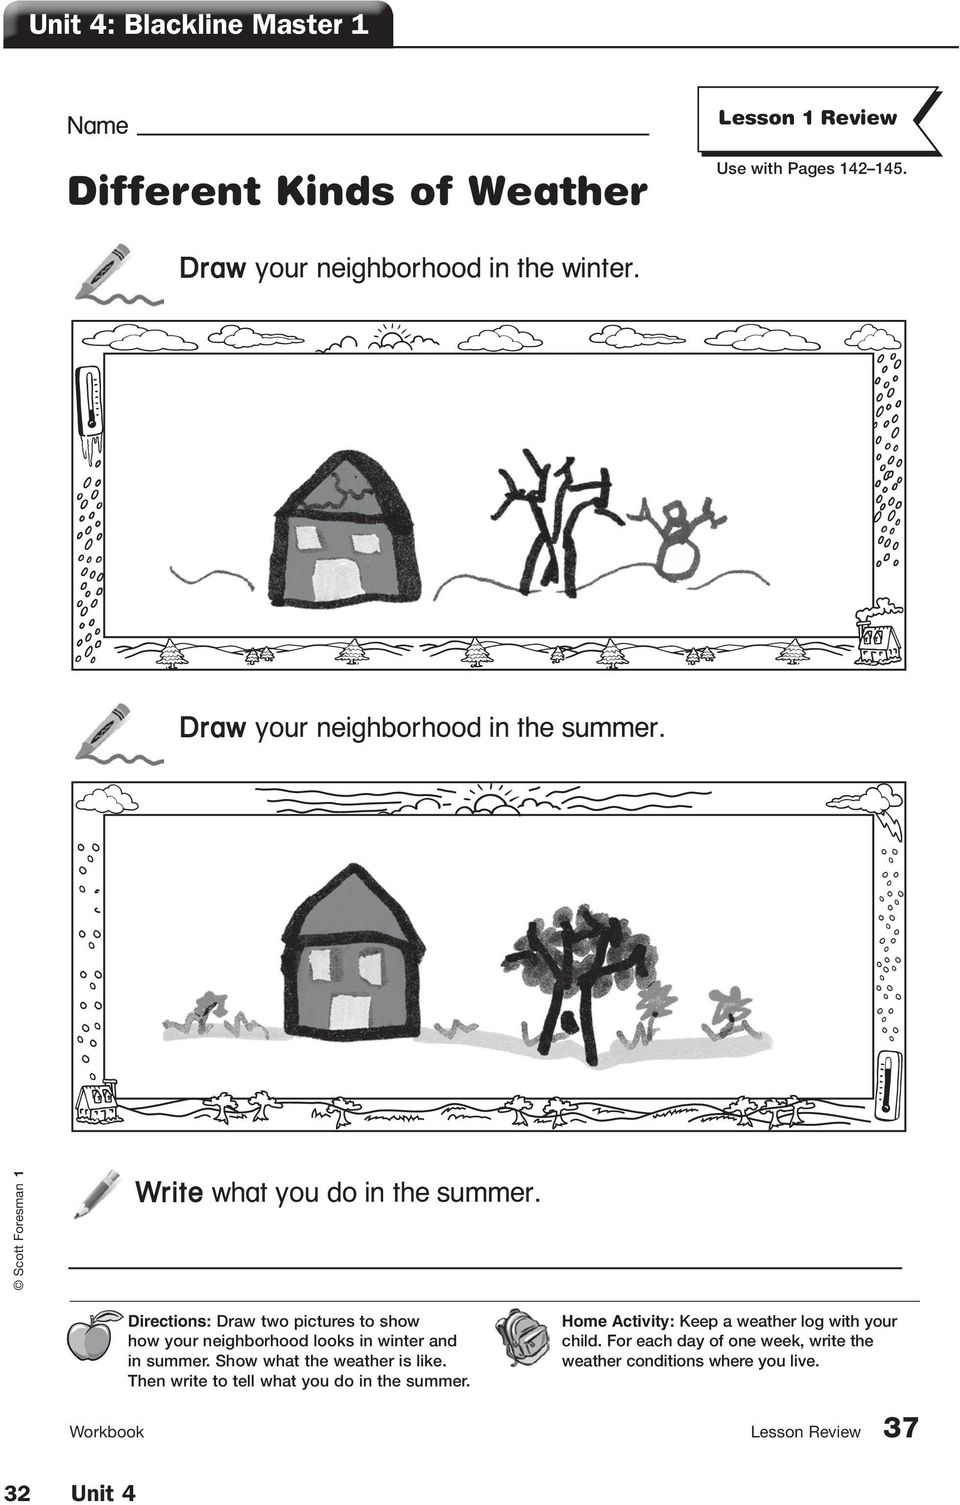 Directions: Draw two pictures to show how your neighborhood looks in winter and in summer. Show what the weather is like.